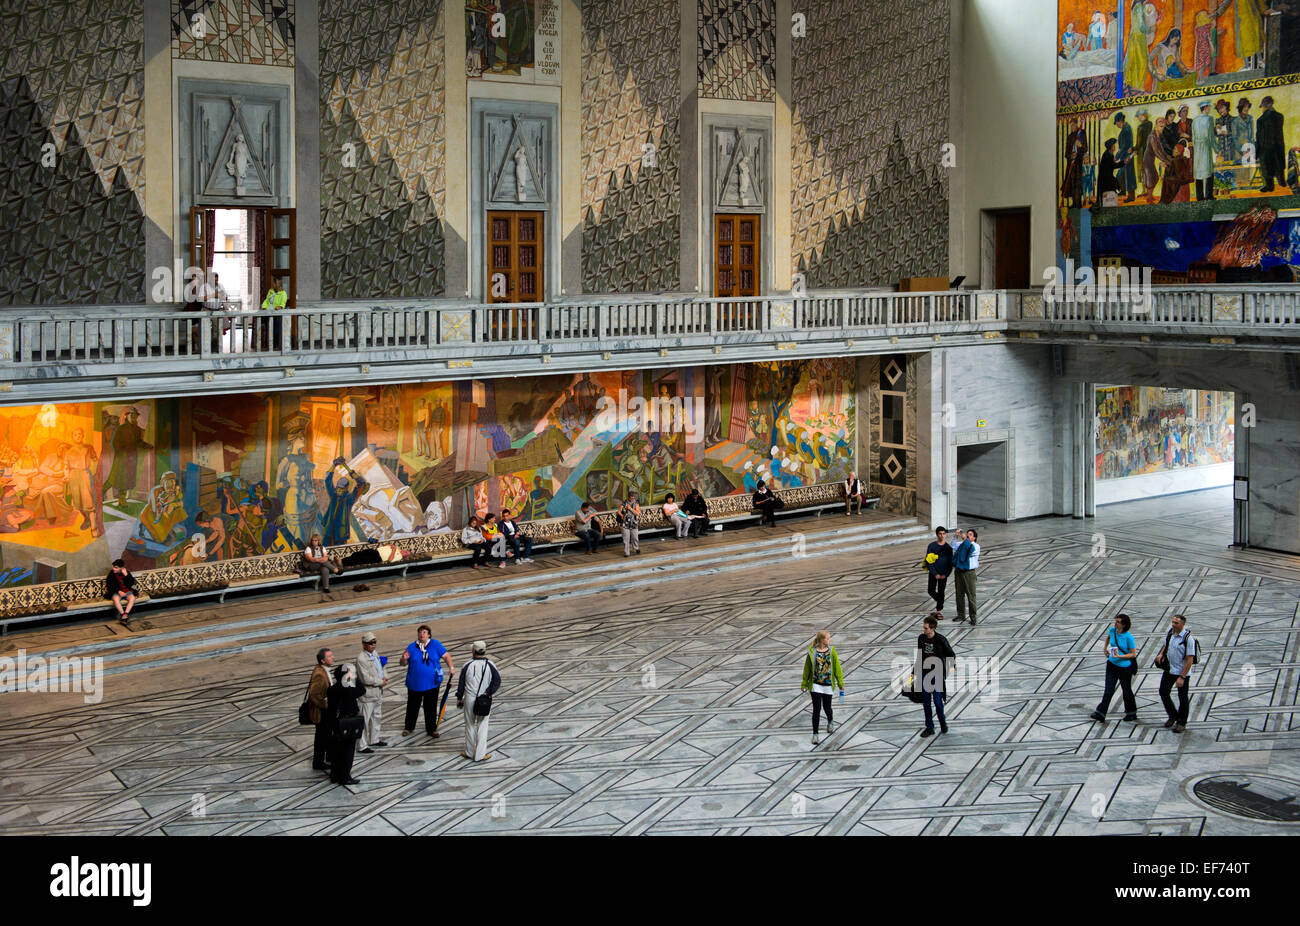 Visitors looking at the murals in the main hall of Oslo City Hall, Oslo, Norway - Stock Image